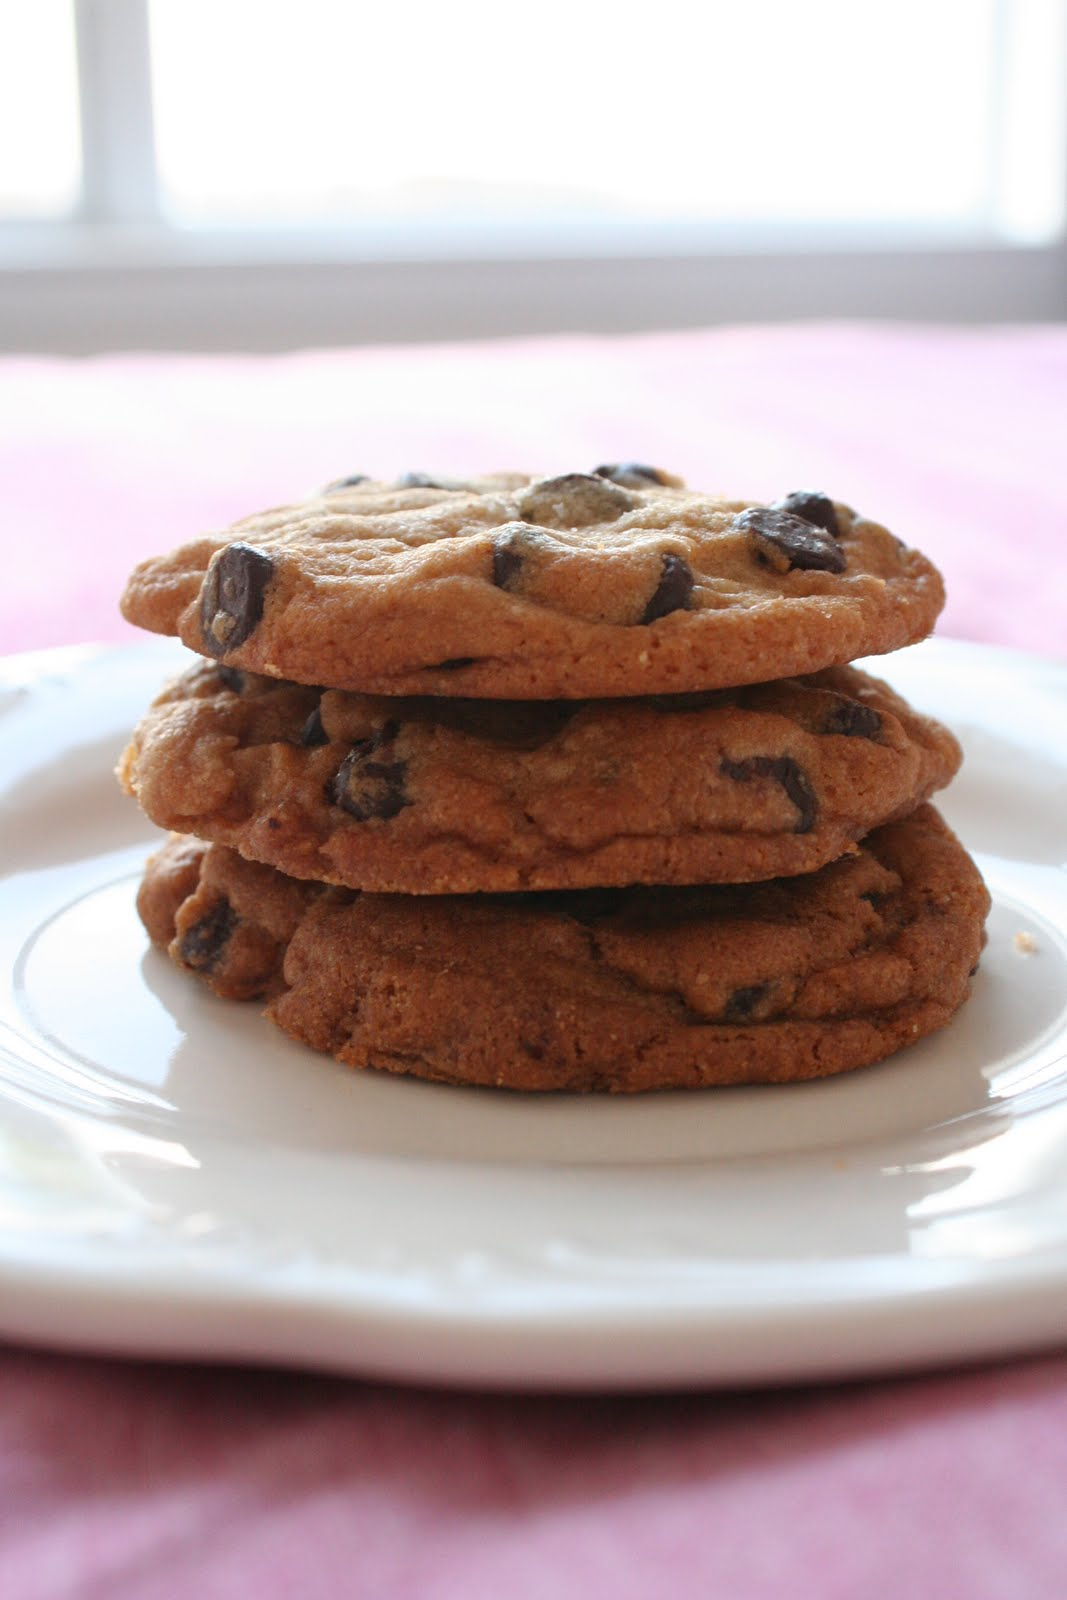 Buttered Up: Consummate Chocolate Chip Cookies